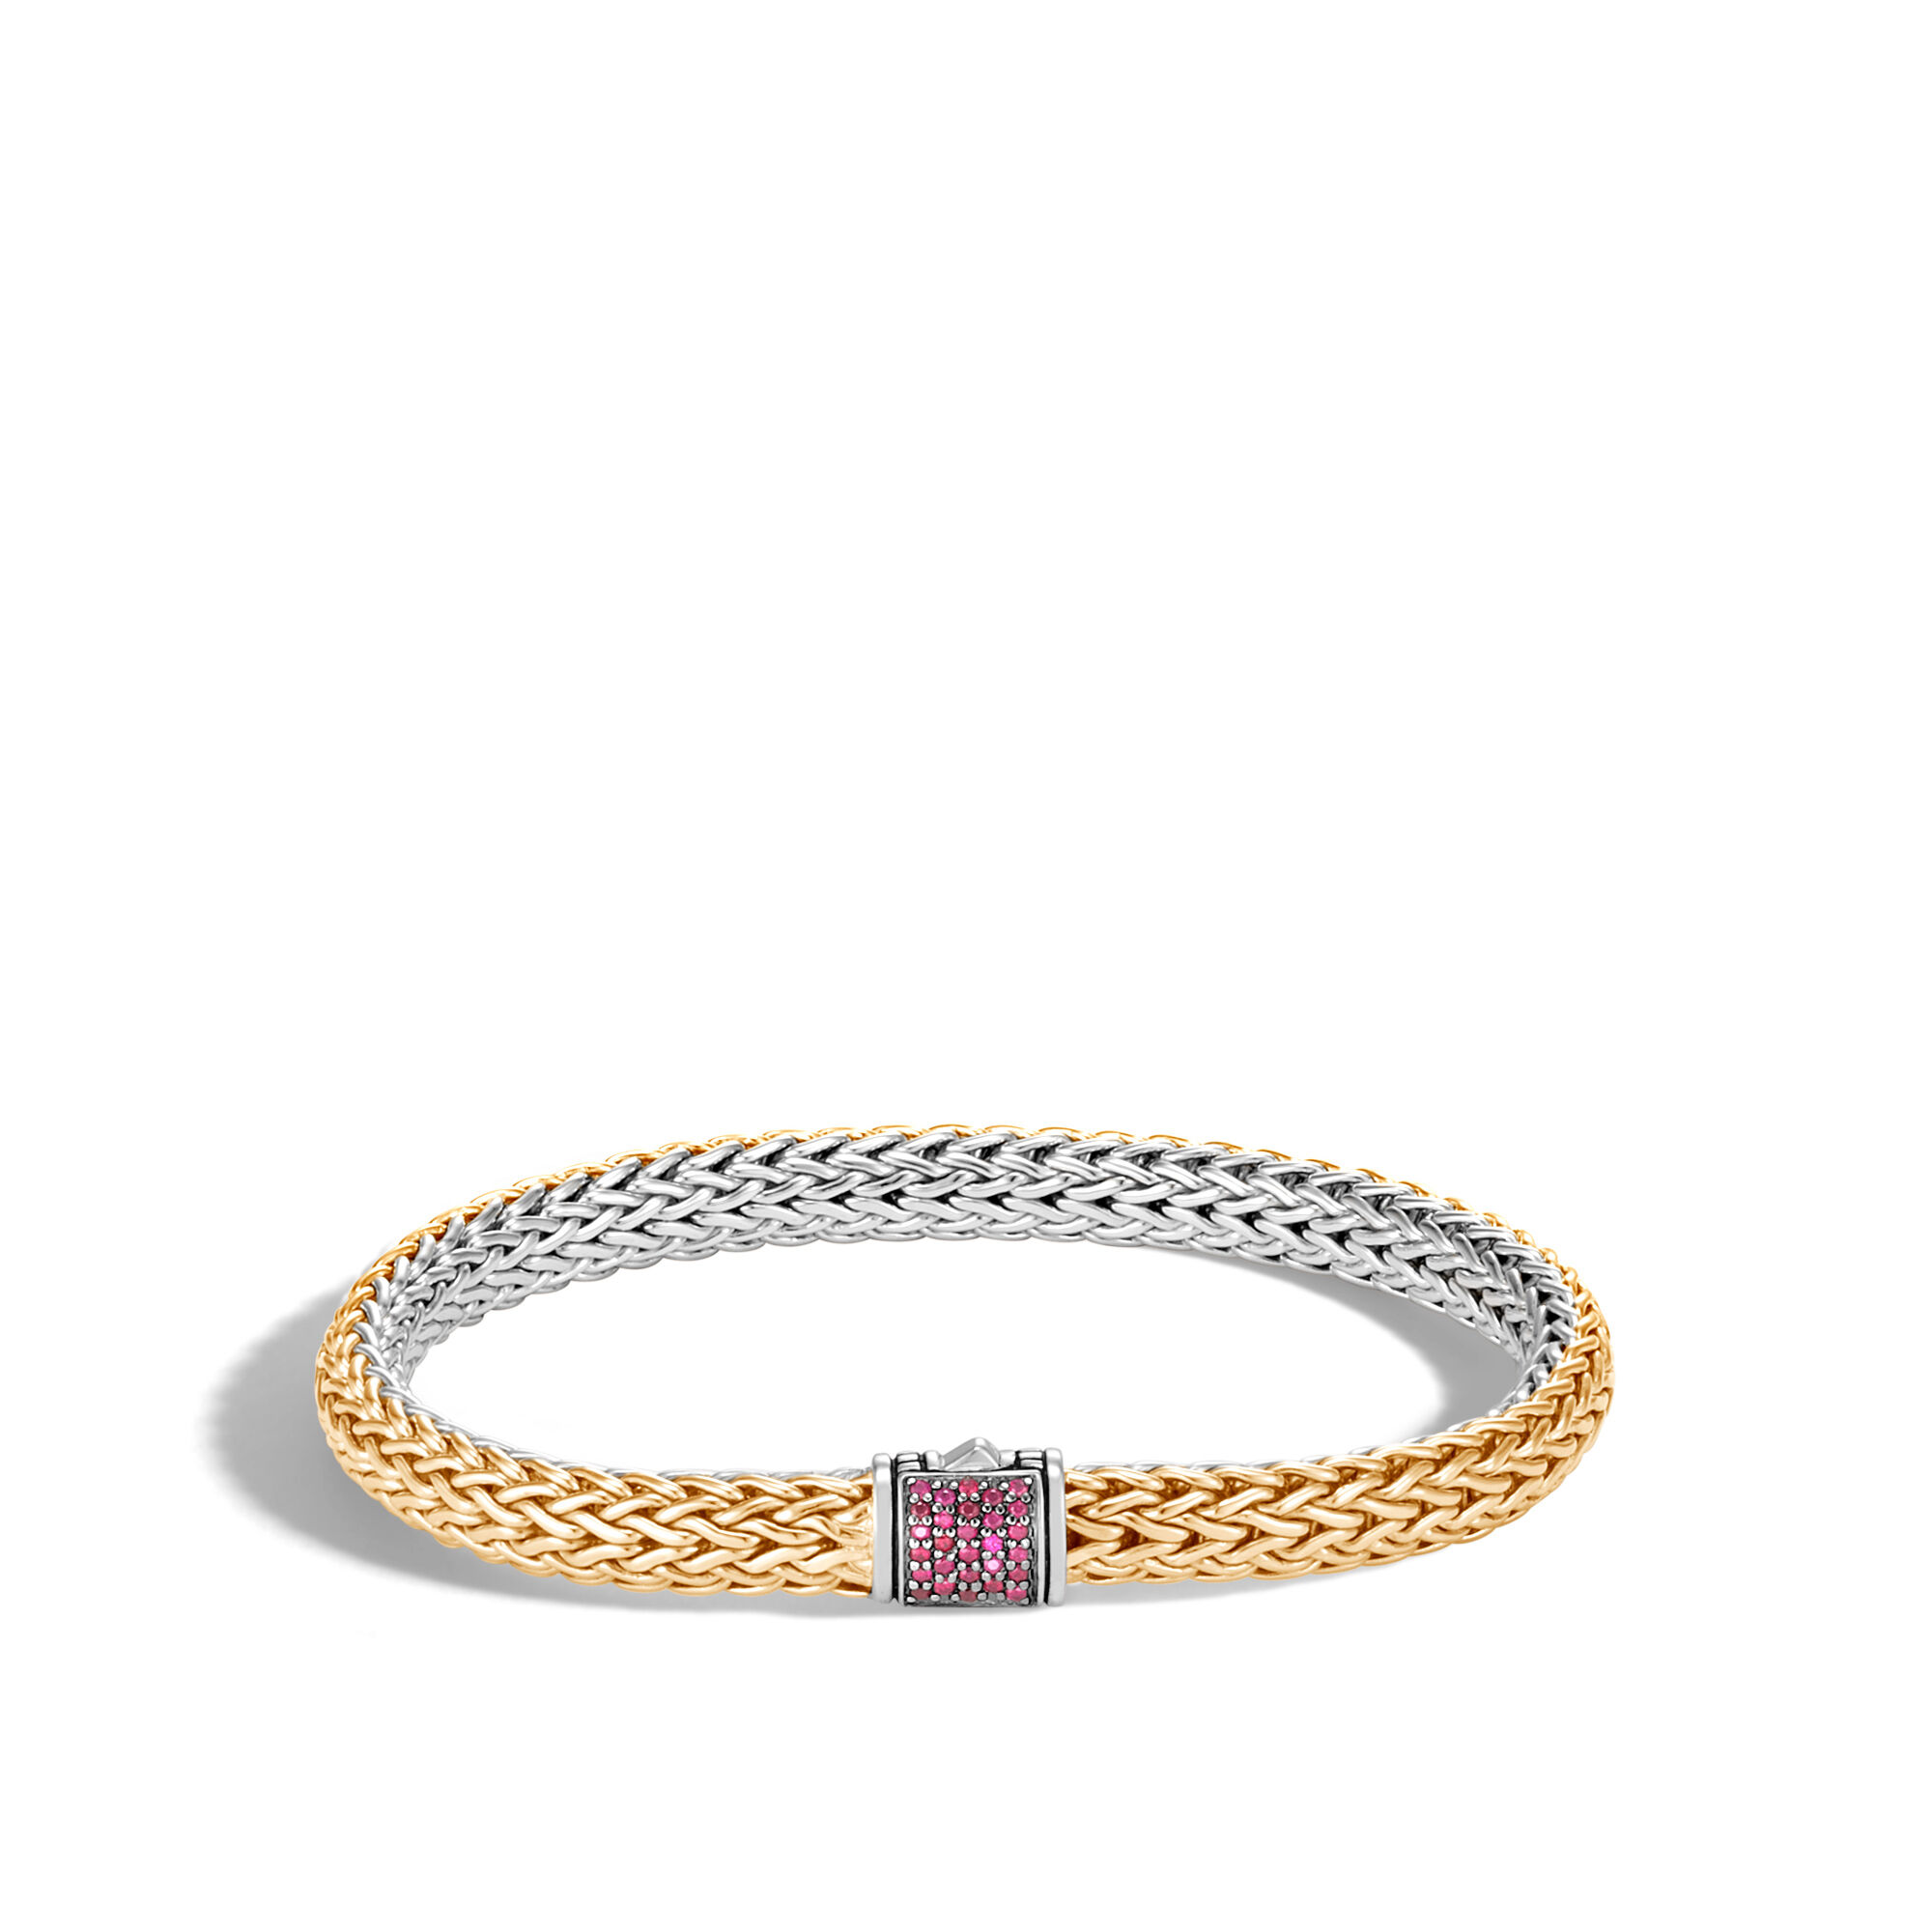 John Hardy Classic Chain Reversible Bracelet With Pink Sapphire Xs Pink sapphire ckePOBmY